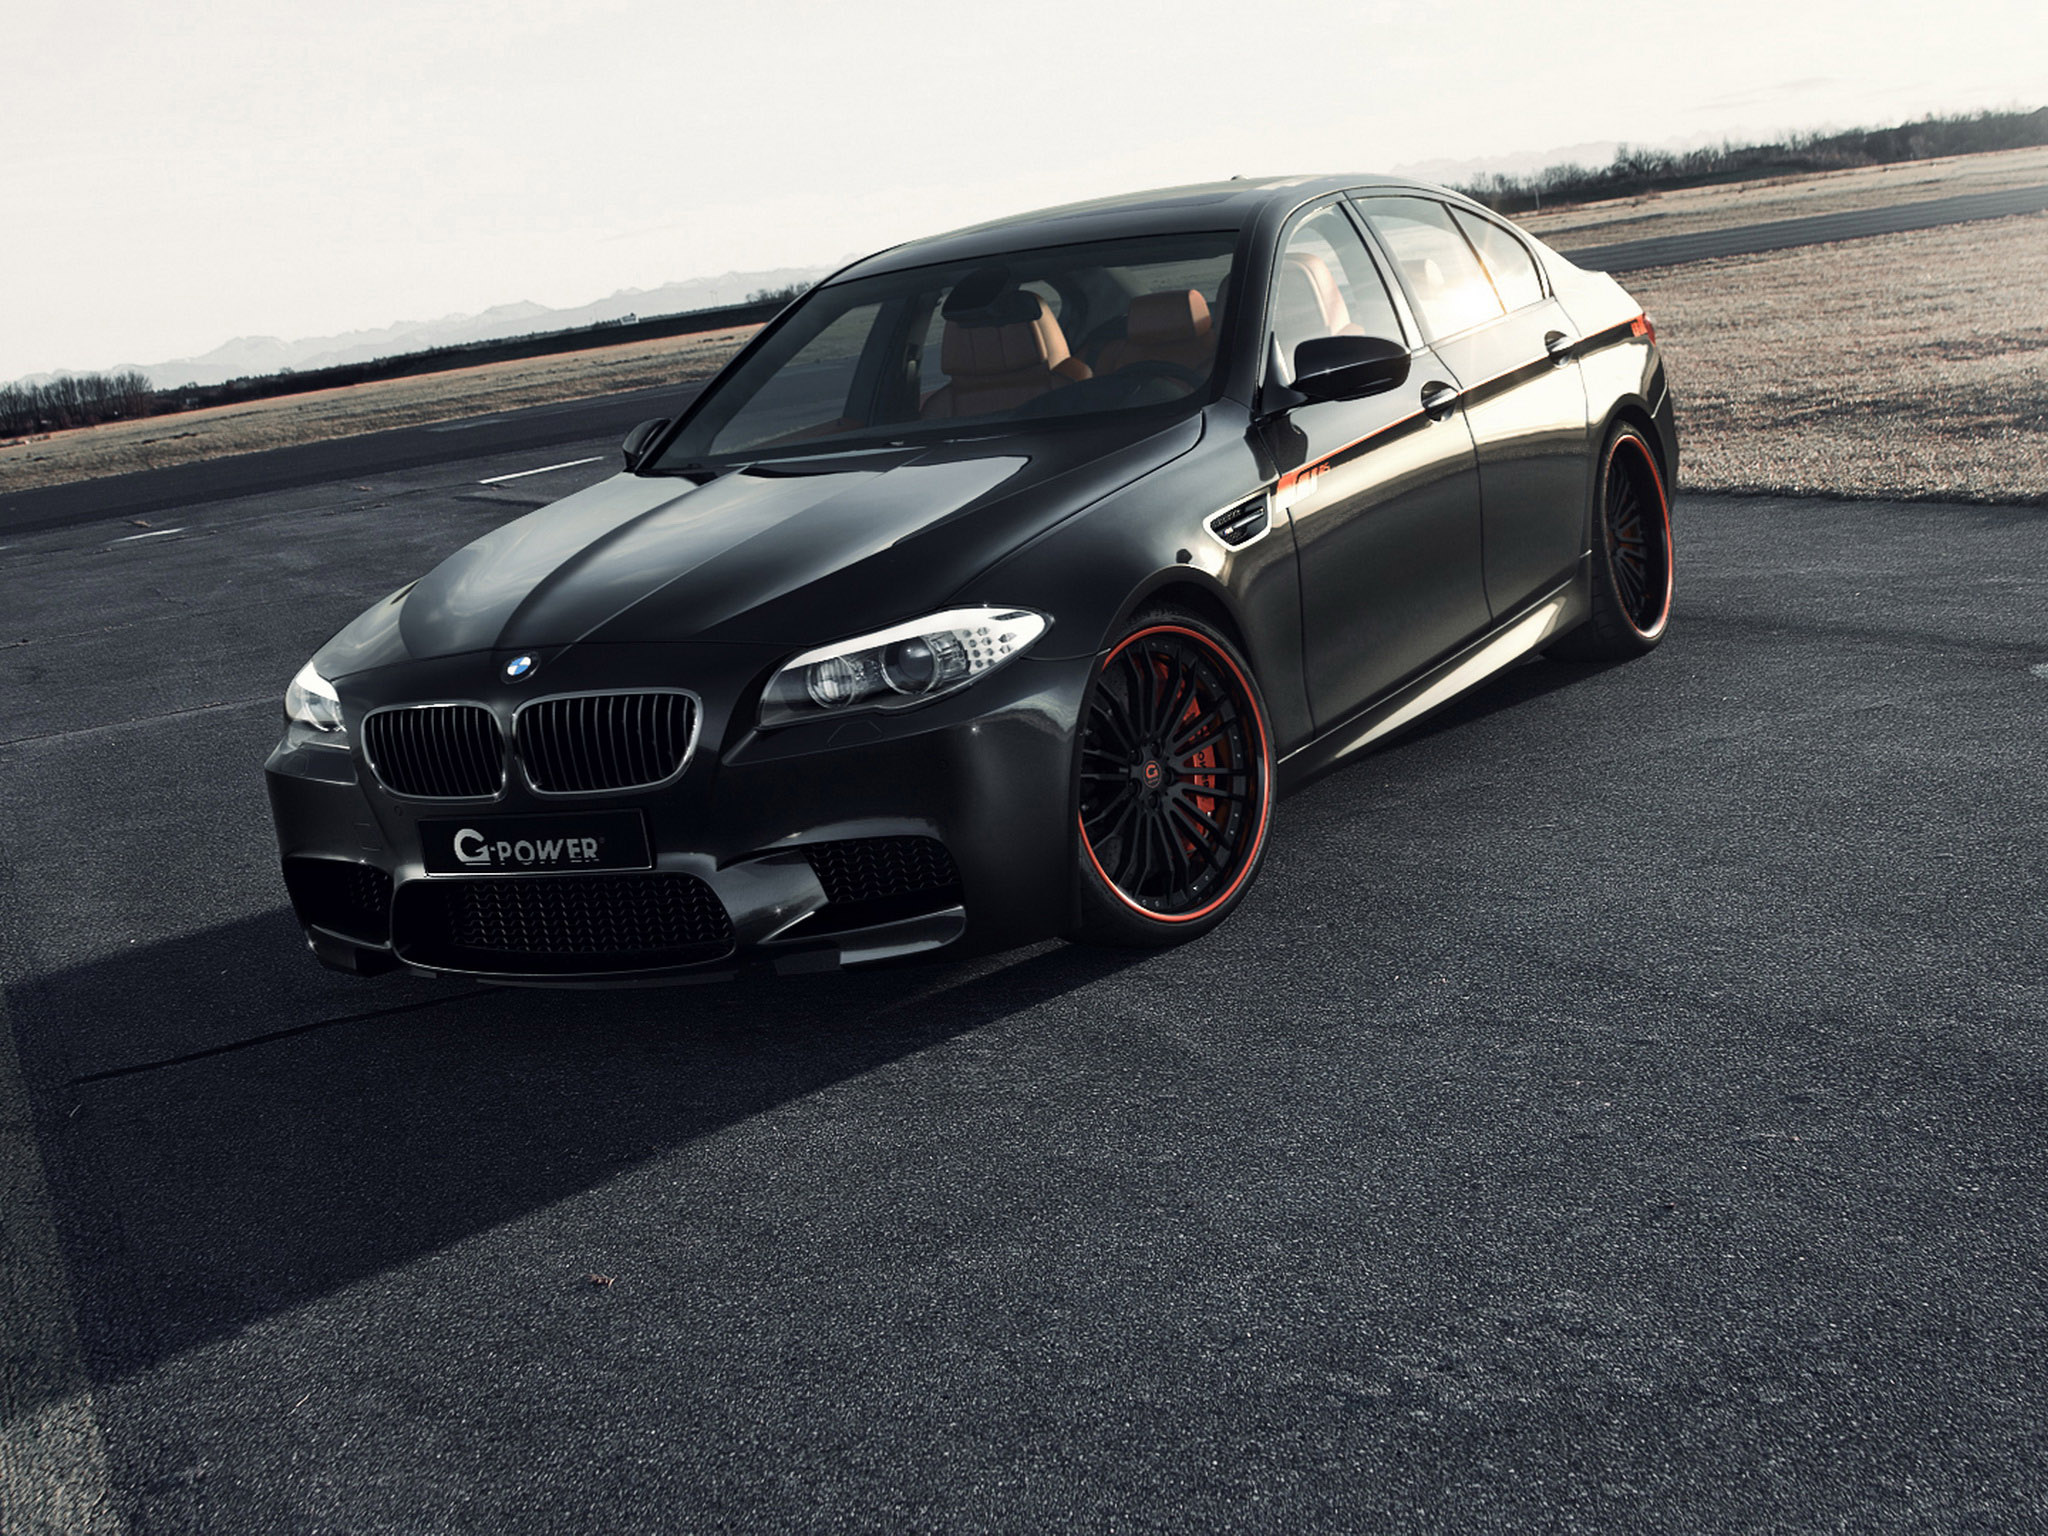 2012 G-Power - Bmw M5 F10